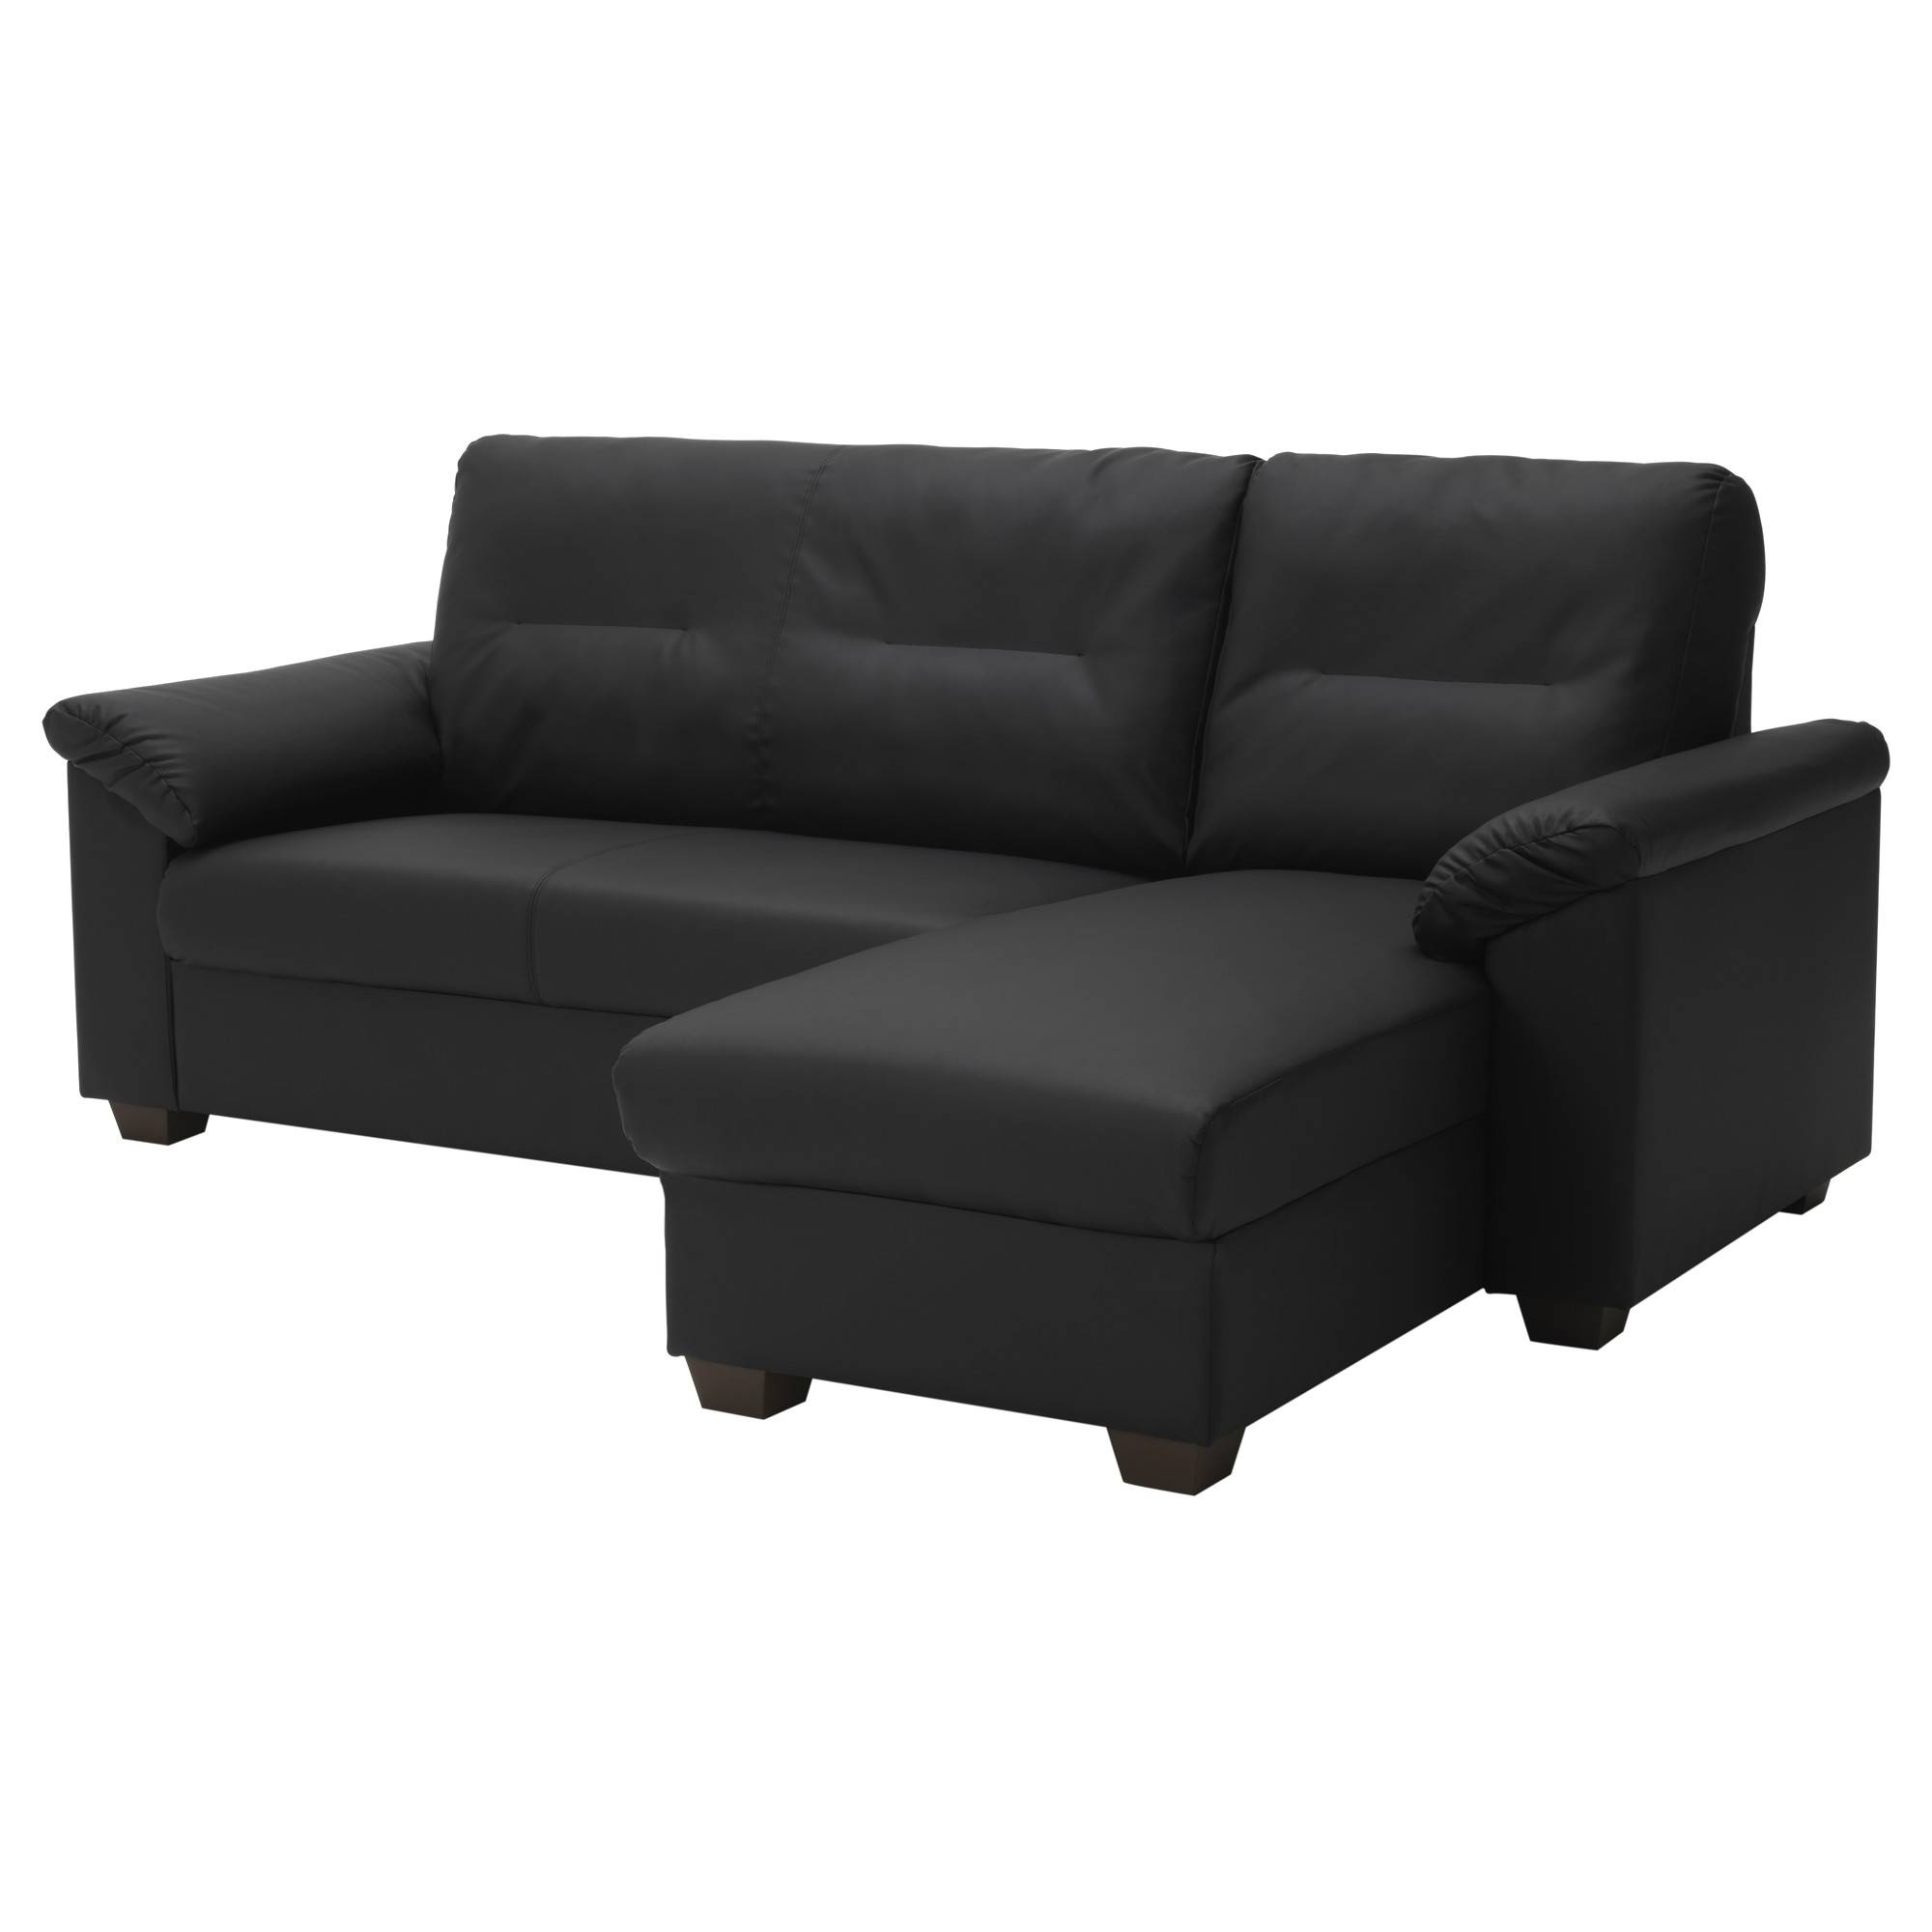 sofa design living of sofas popular chaise best sectional review new sleeper with beautiful elegant